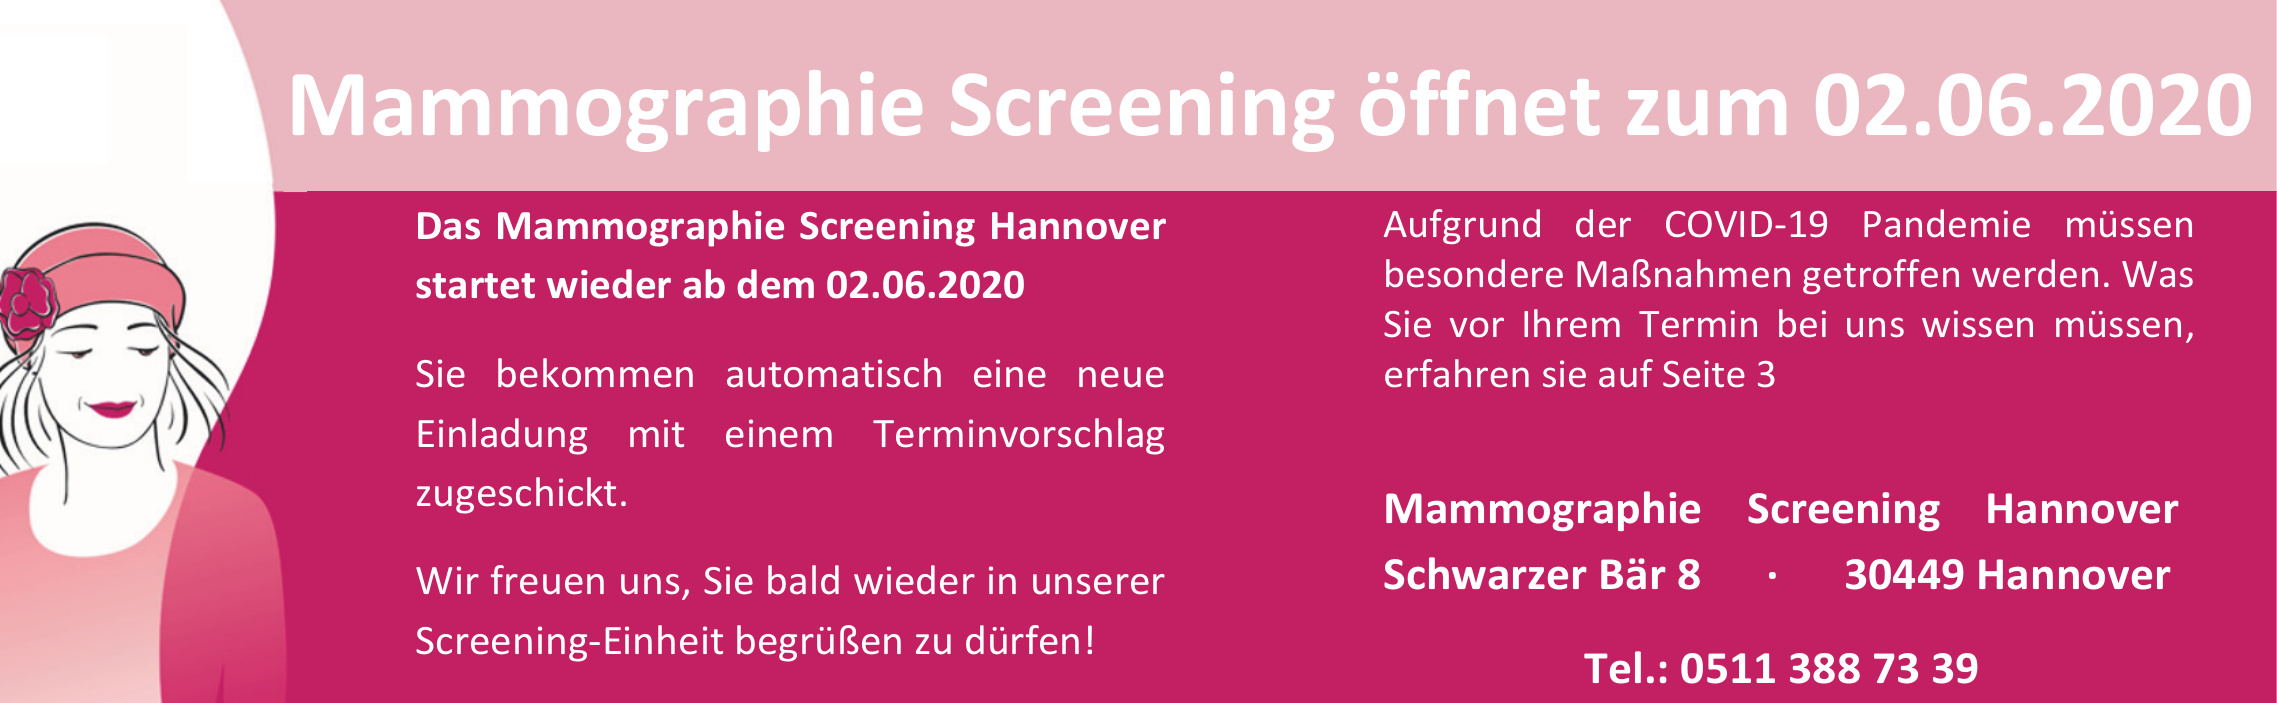 Mammographie Screening Hannover